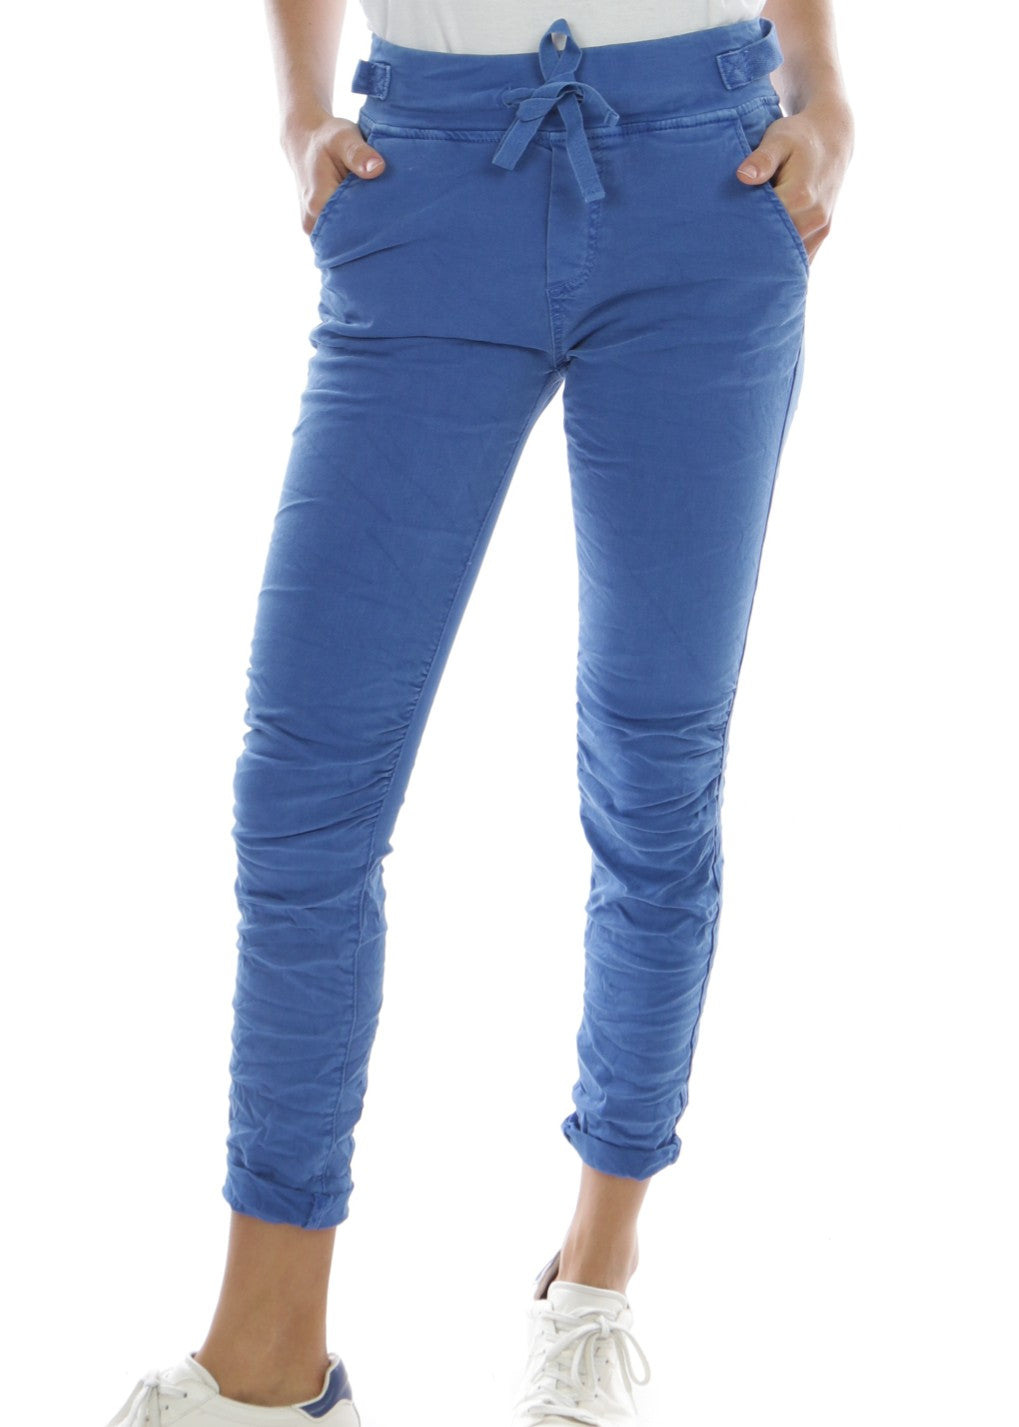 SOFIA - Pull-on Jeans - Cobalt Blue